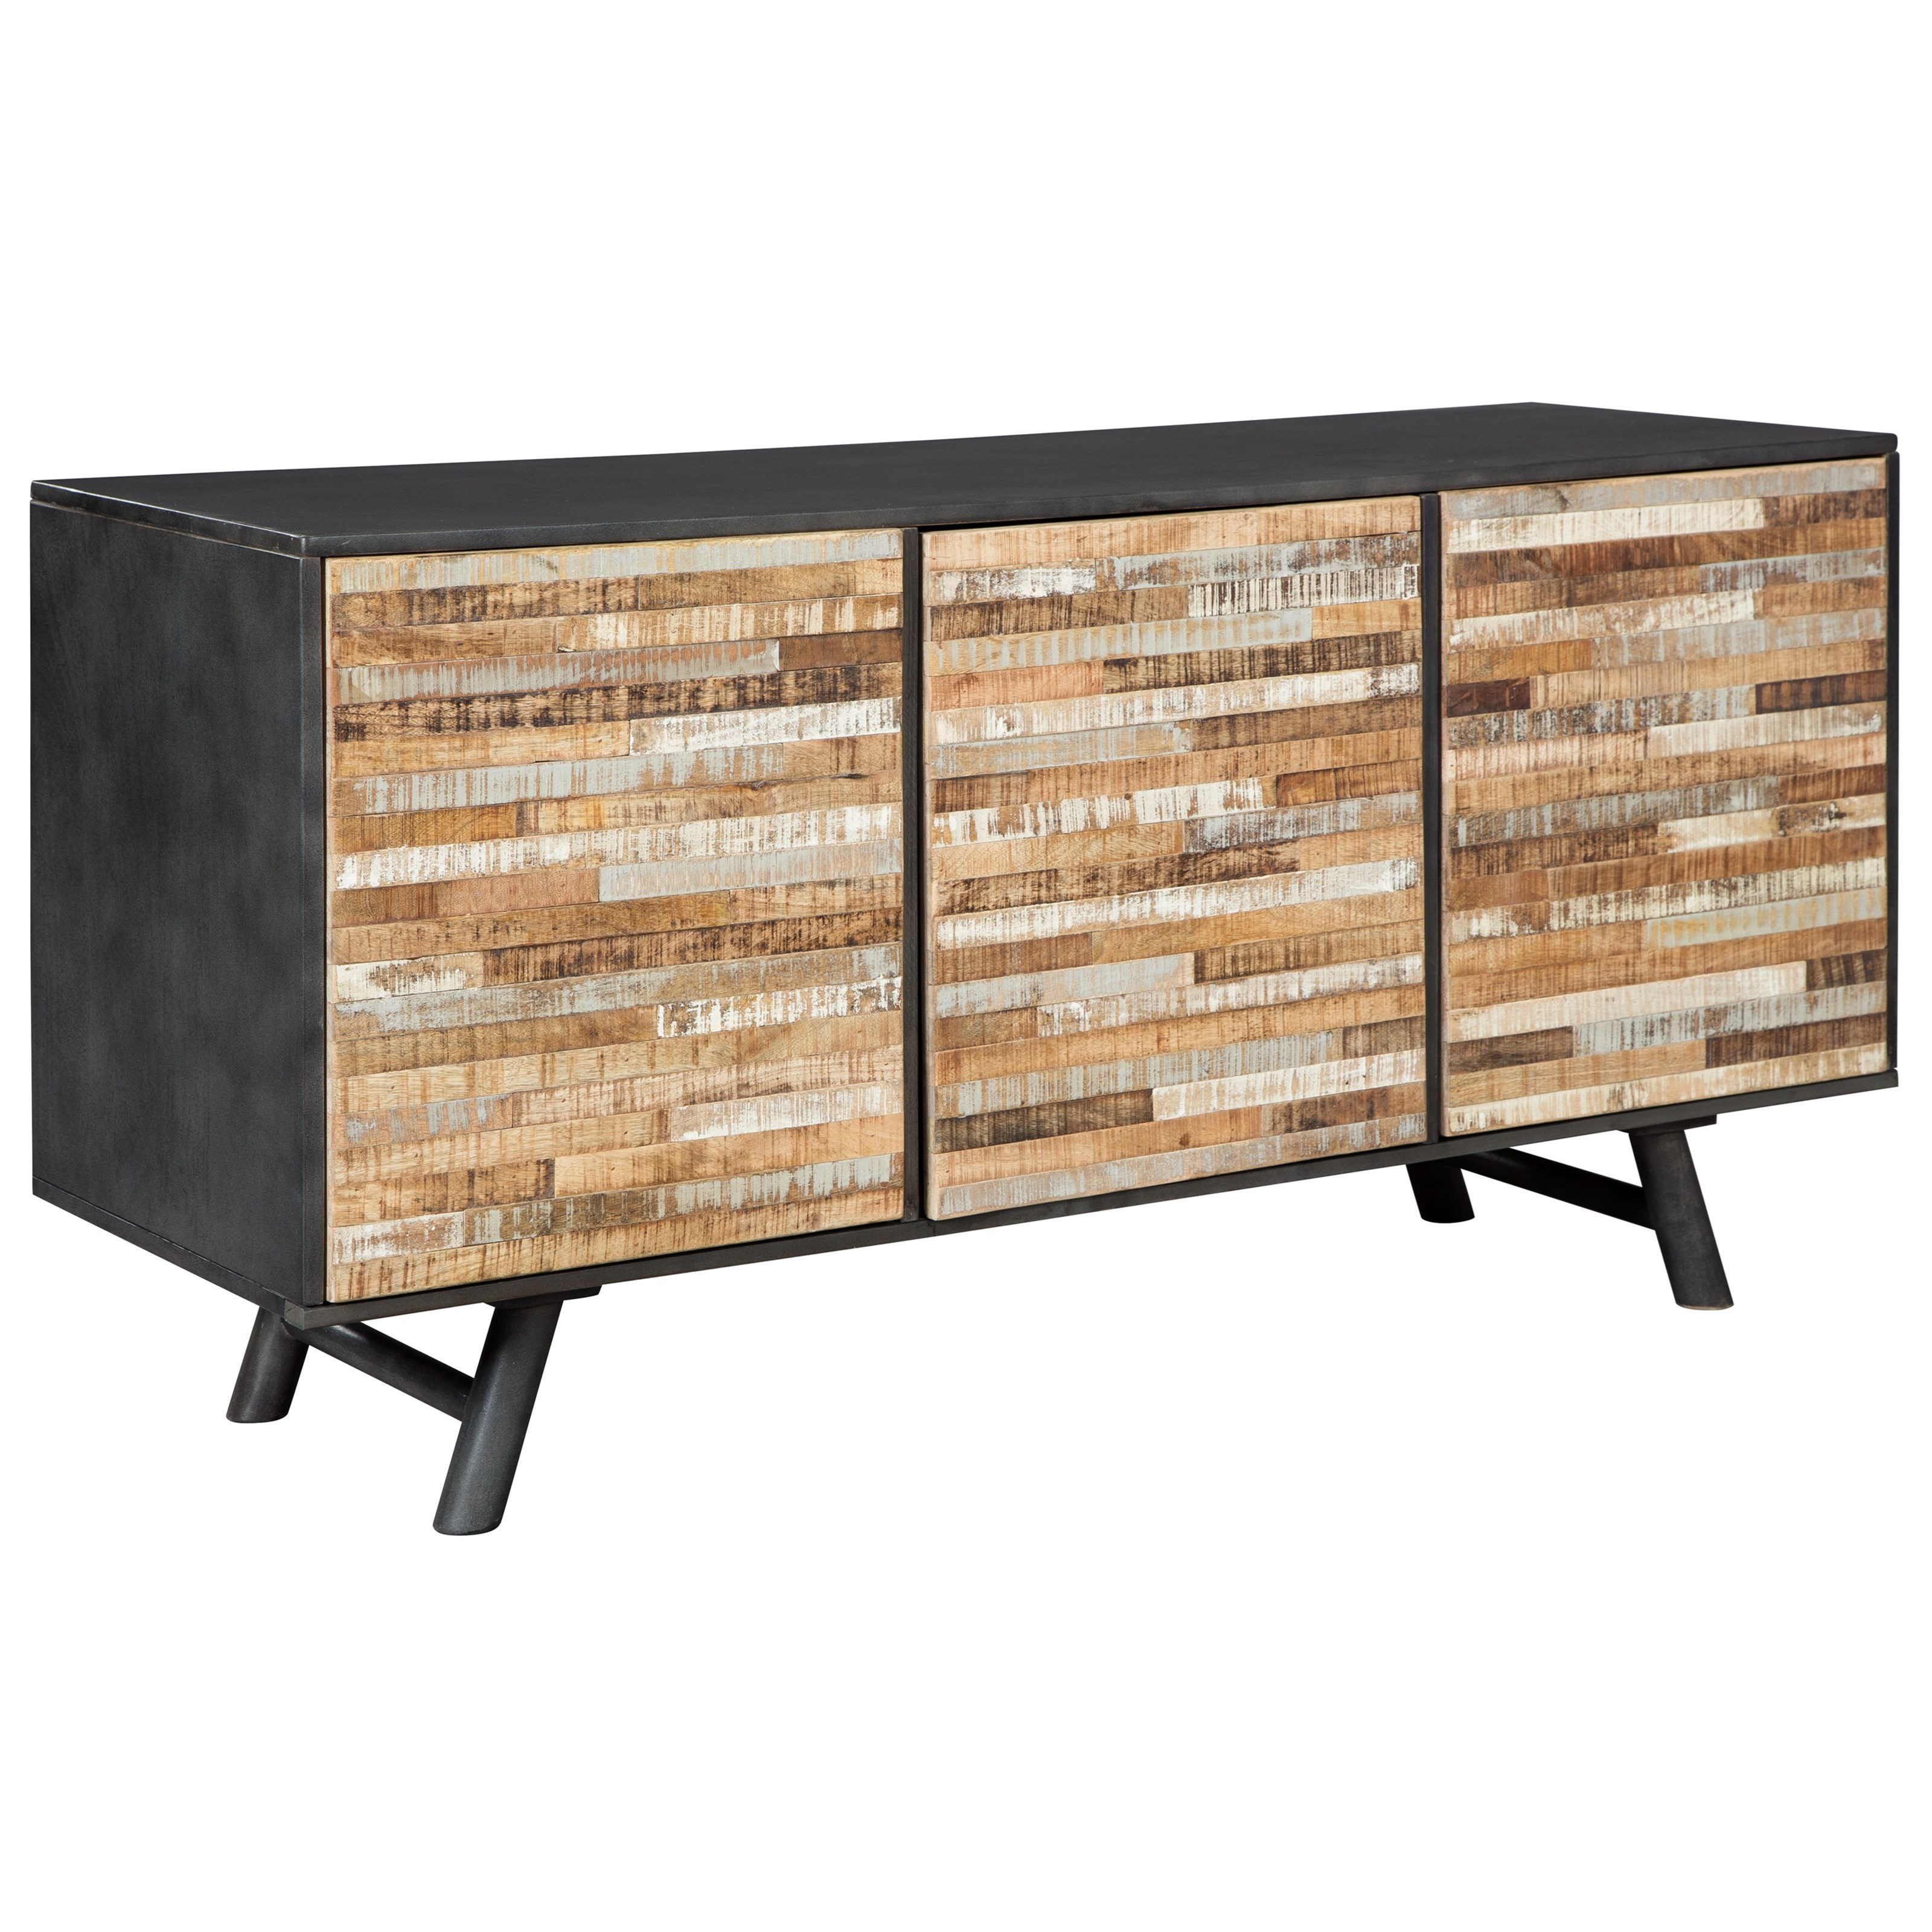 Walentin Accent Cabinet By Ashley Furniture: Signature Design By Ashley Forestmin A4000053 Mid-Century